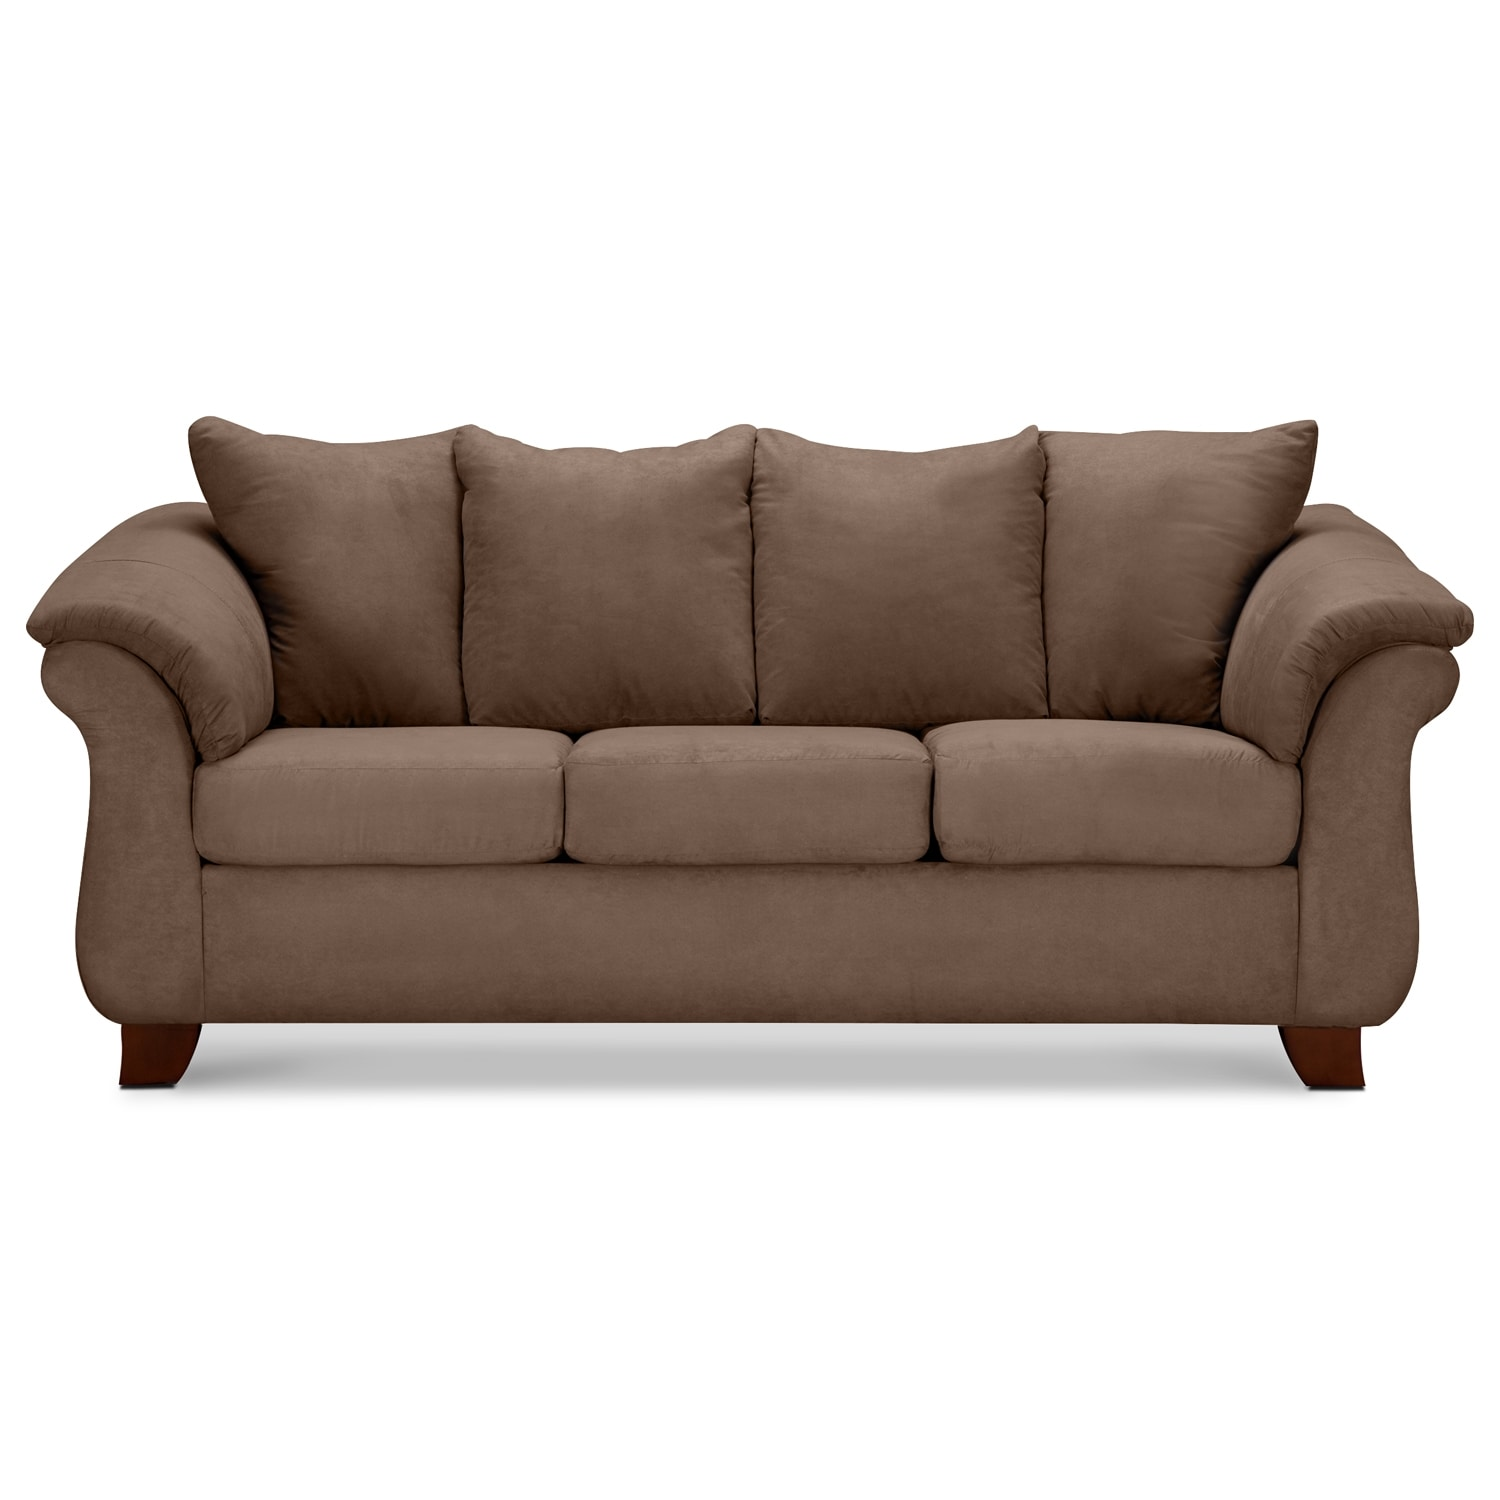 Adrian taupe sofa value city furniture Sofa loveseat